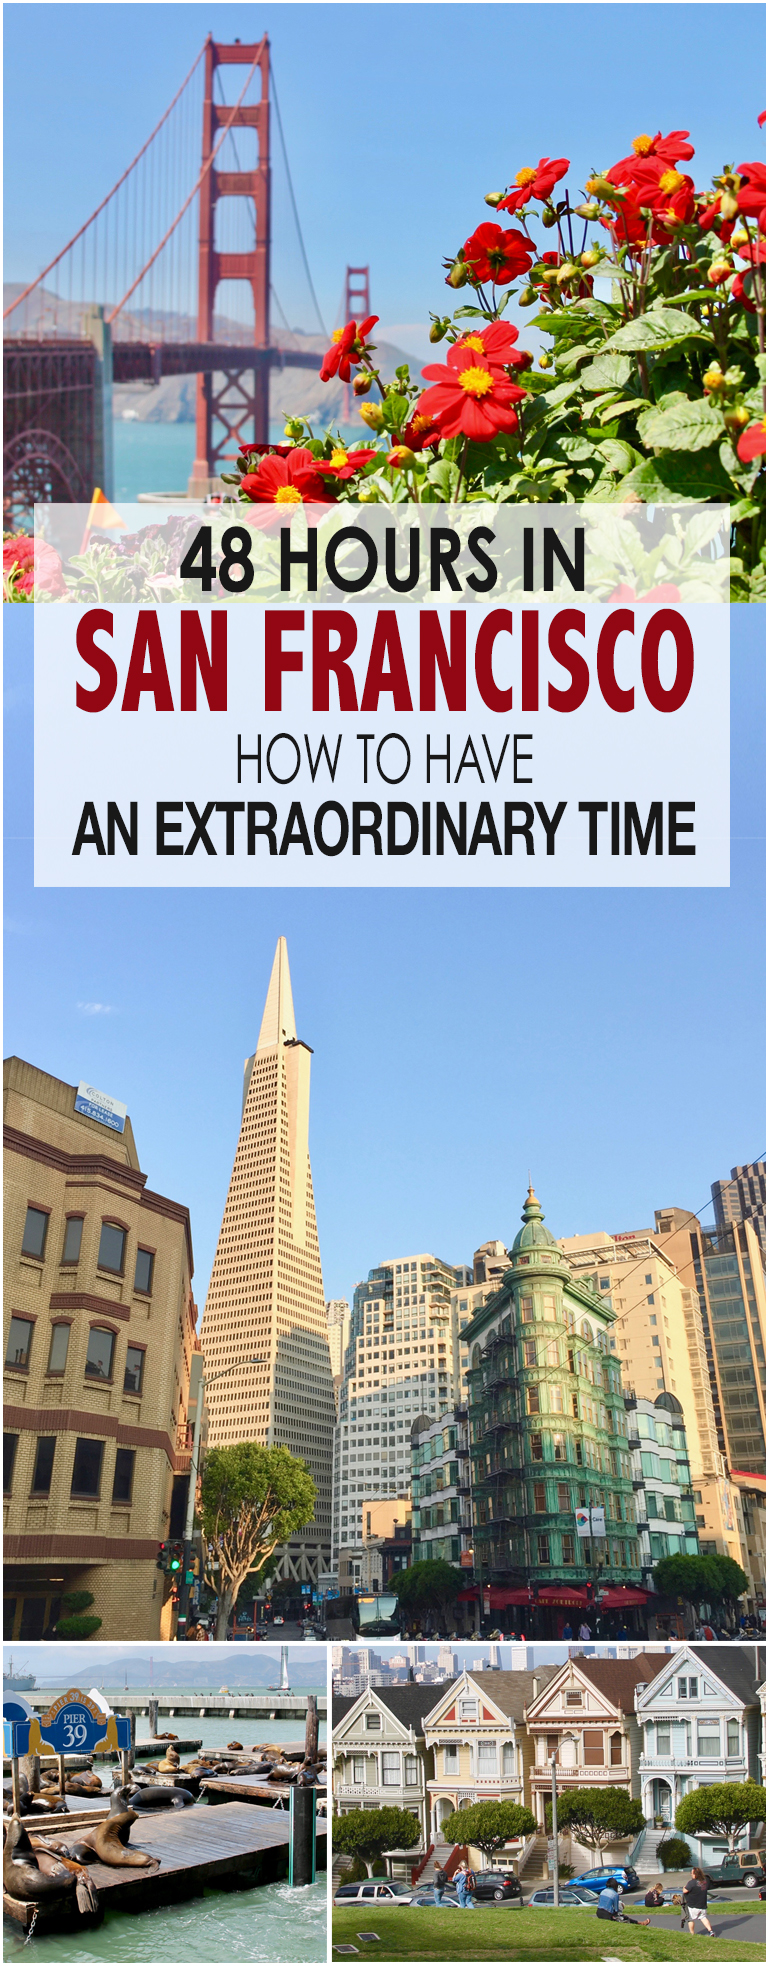 48 hours in San Francisco tips for an extraordinary trip